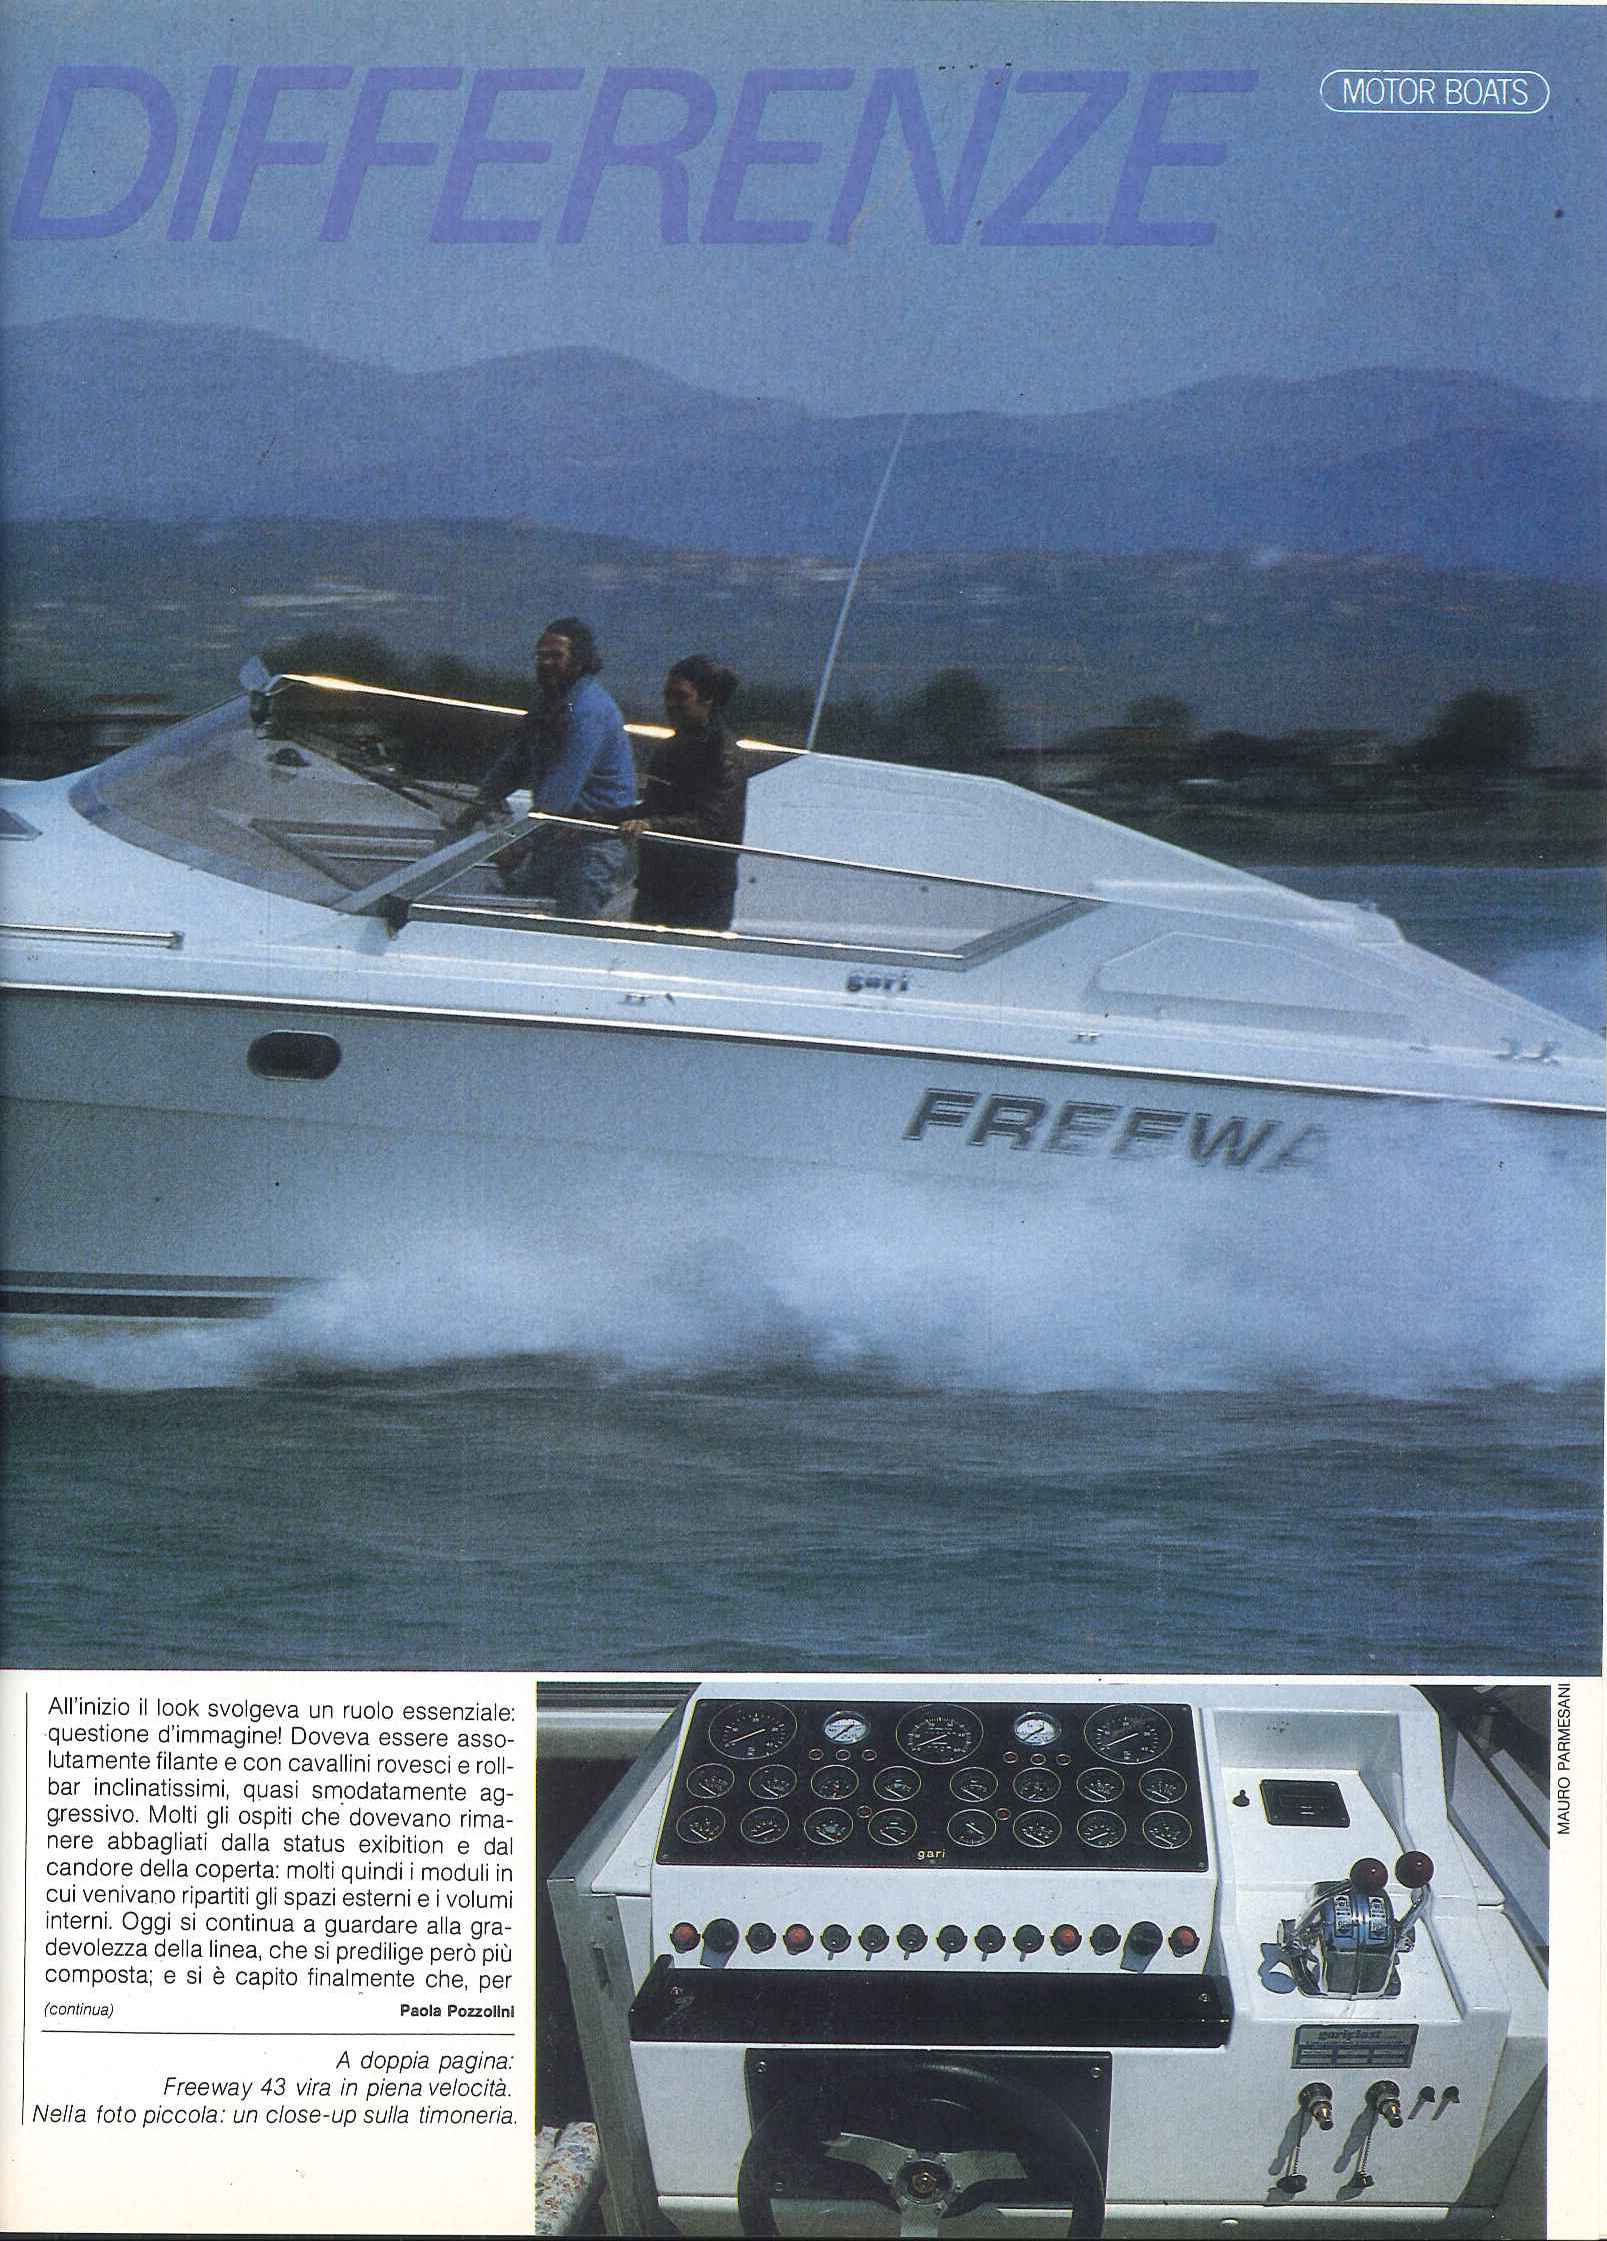 1987 07 PRESS GARIPLAST FREEWAY 43 UOMO MARE N°111(02).jpg